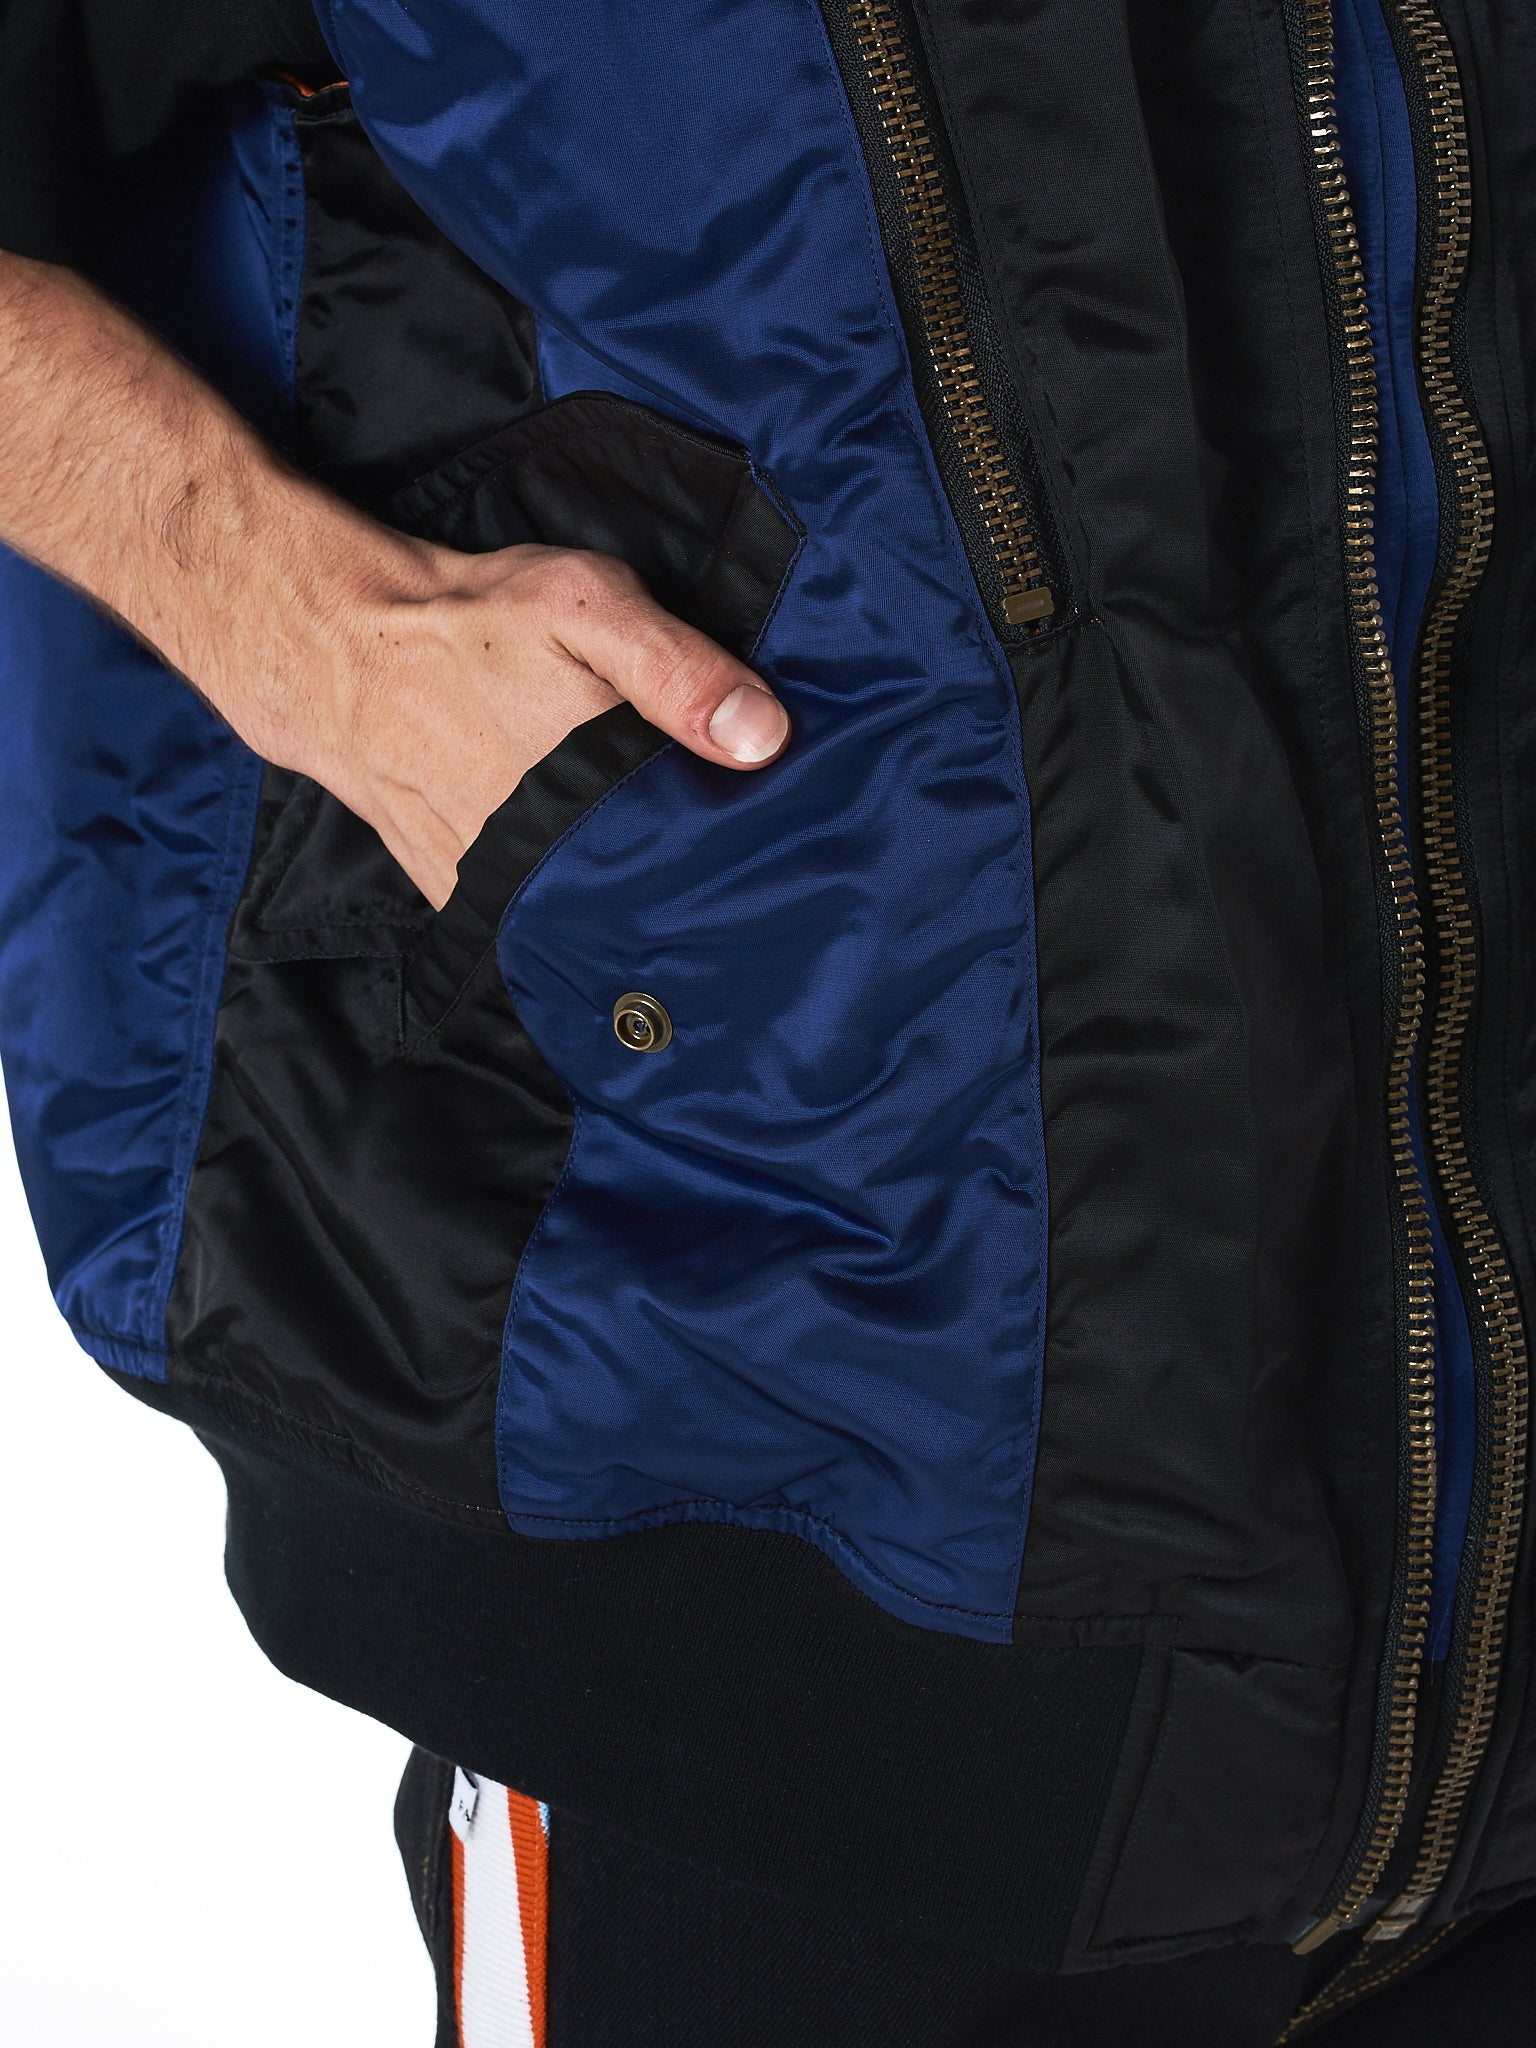 Zippered Nylon Vest (RB-VE-M04-BLACK-NAVY)